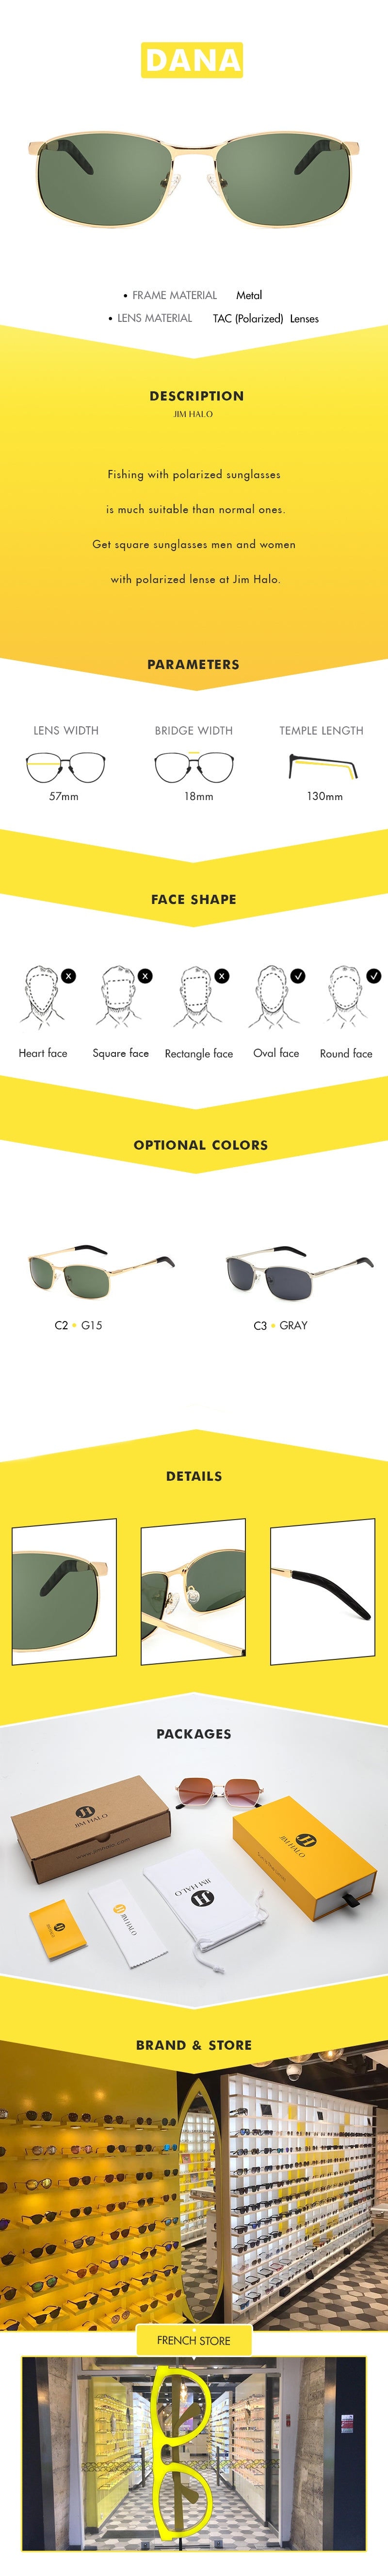 Fishing with polarized sunglasses is much suitable than normal ones.Get square sunglasses men and women with polarized lense at Jim Halo.